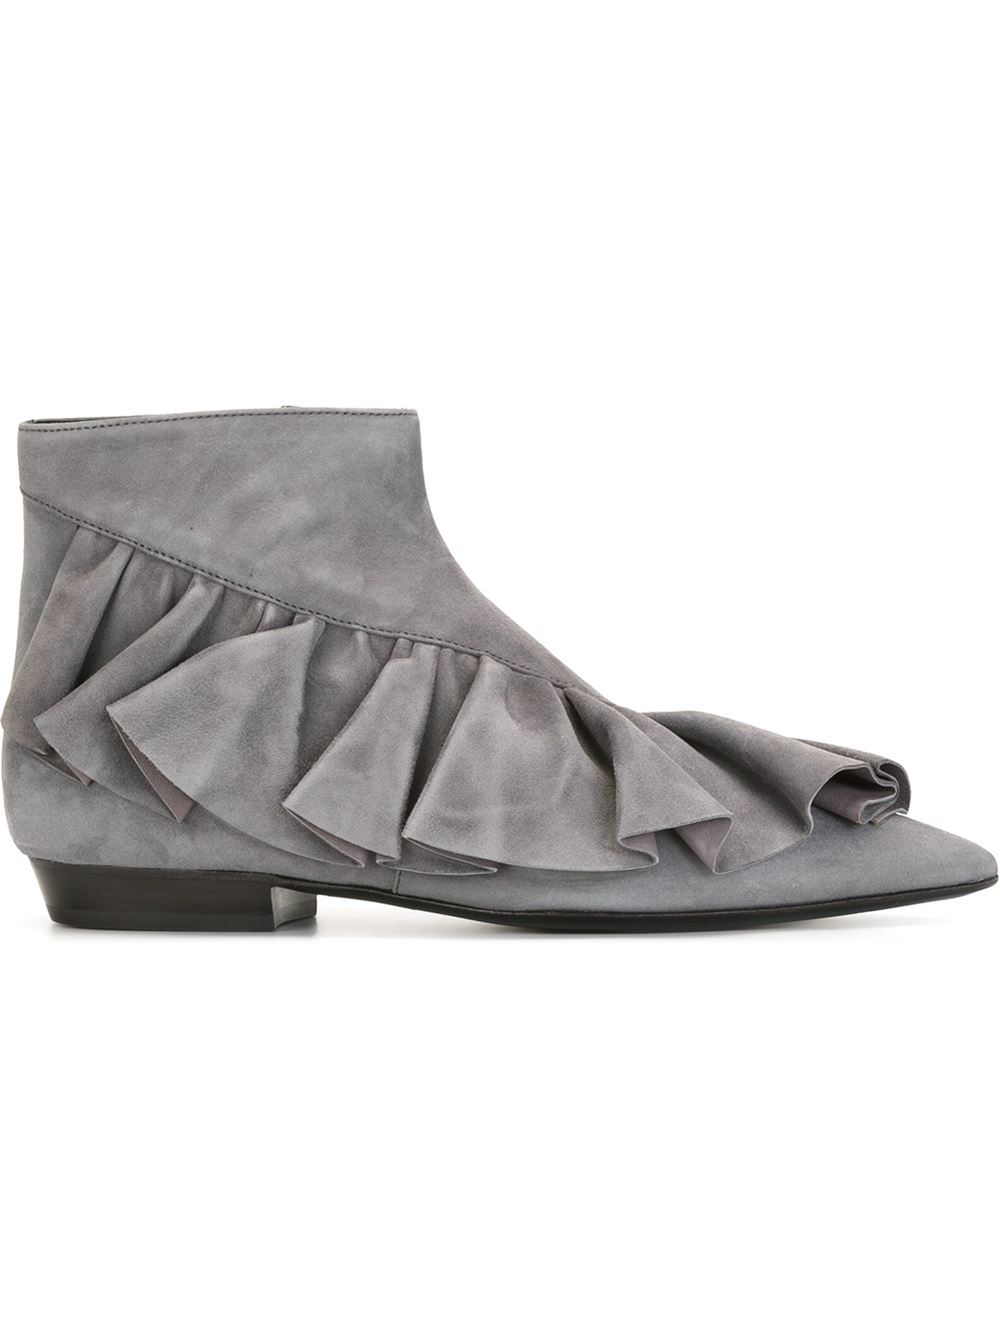 J W Anderson Ruffle Ankle Boots In Gray Lyst